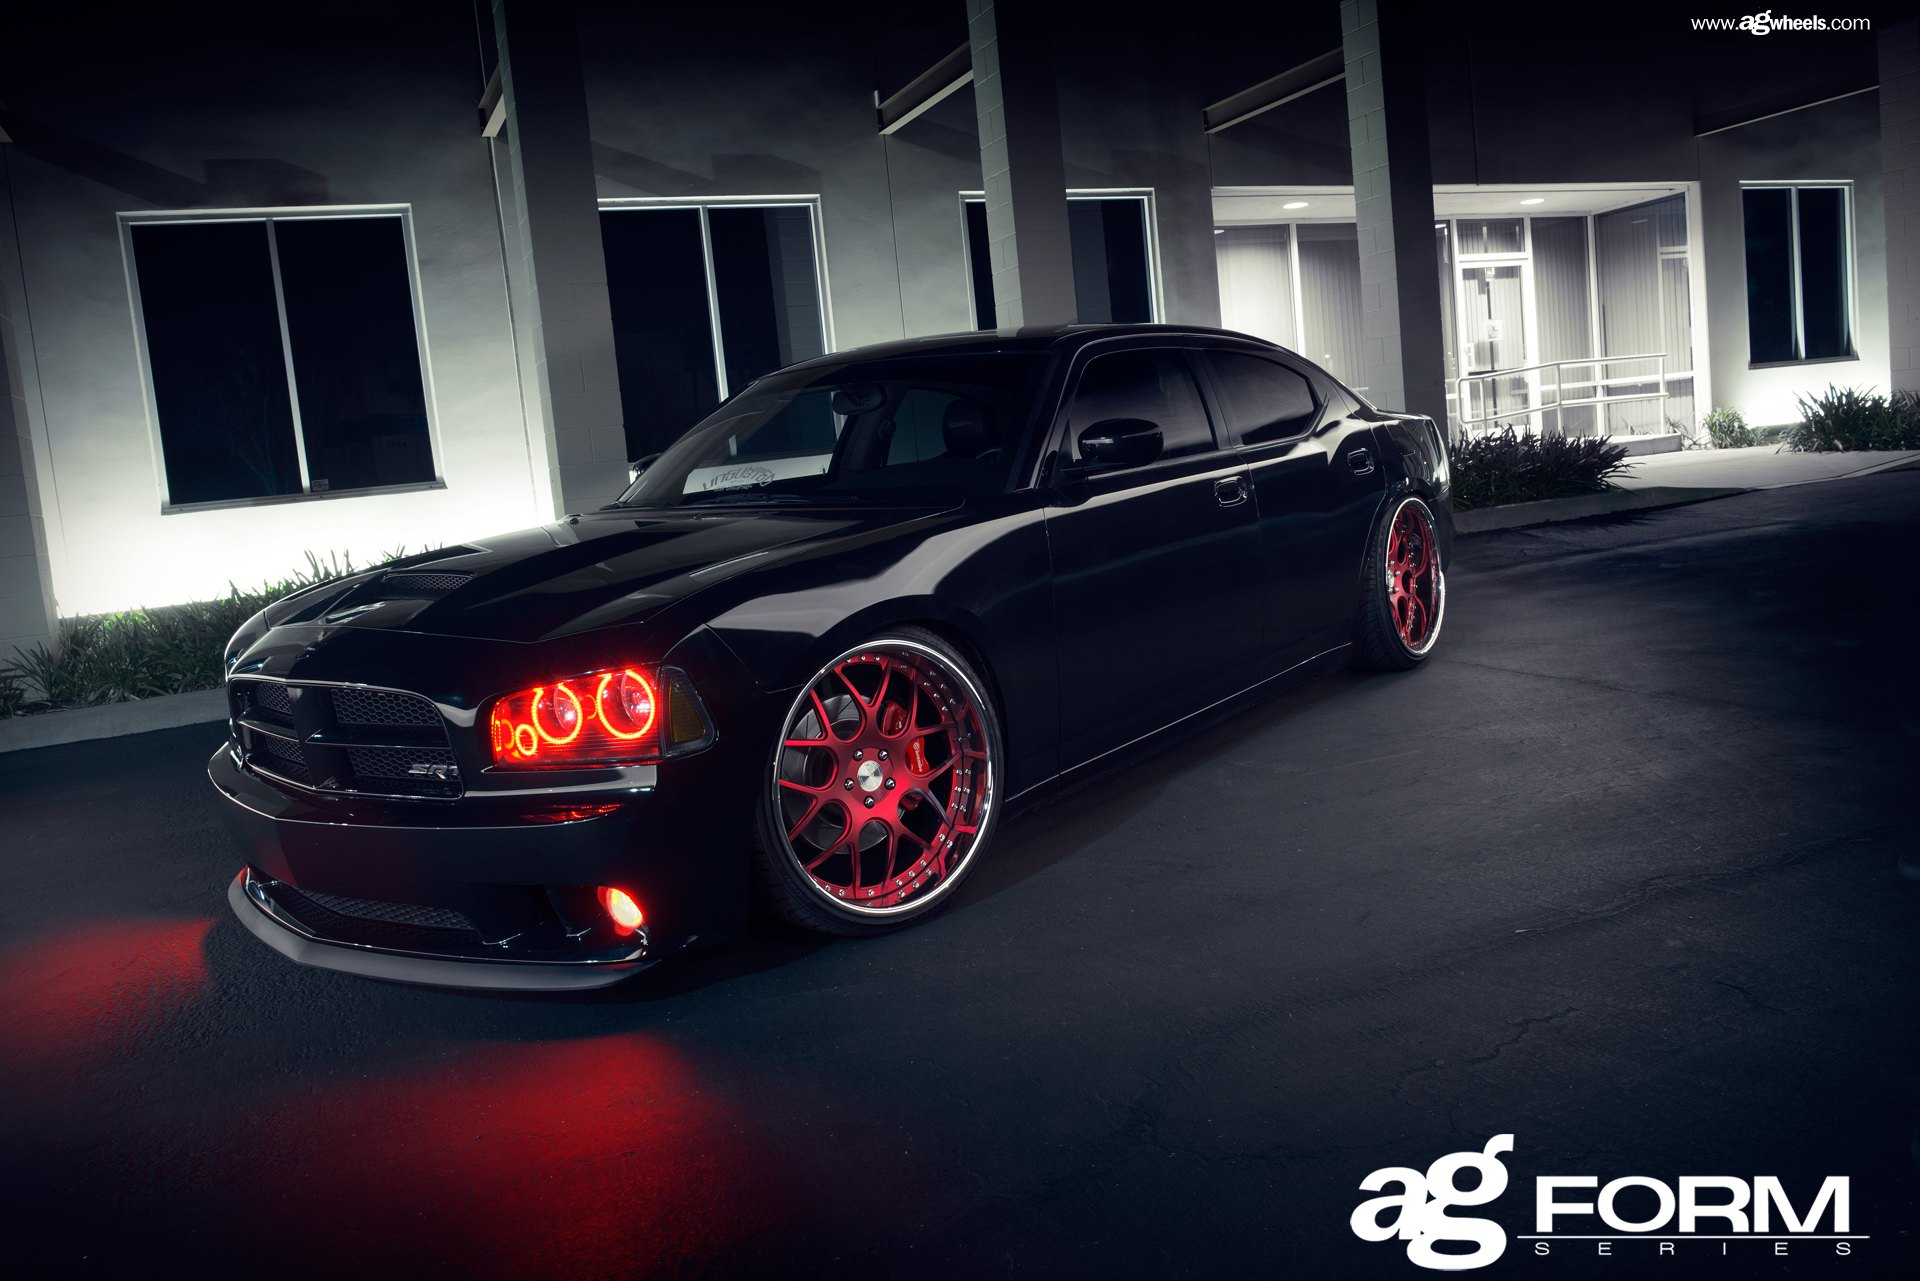 Avant Garde Red Custom Wheels With Polished Lips On Black Charger  U2014 Carid Com Gallery